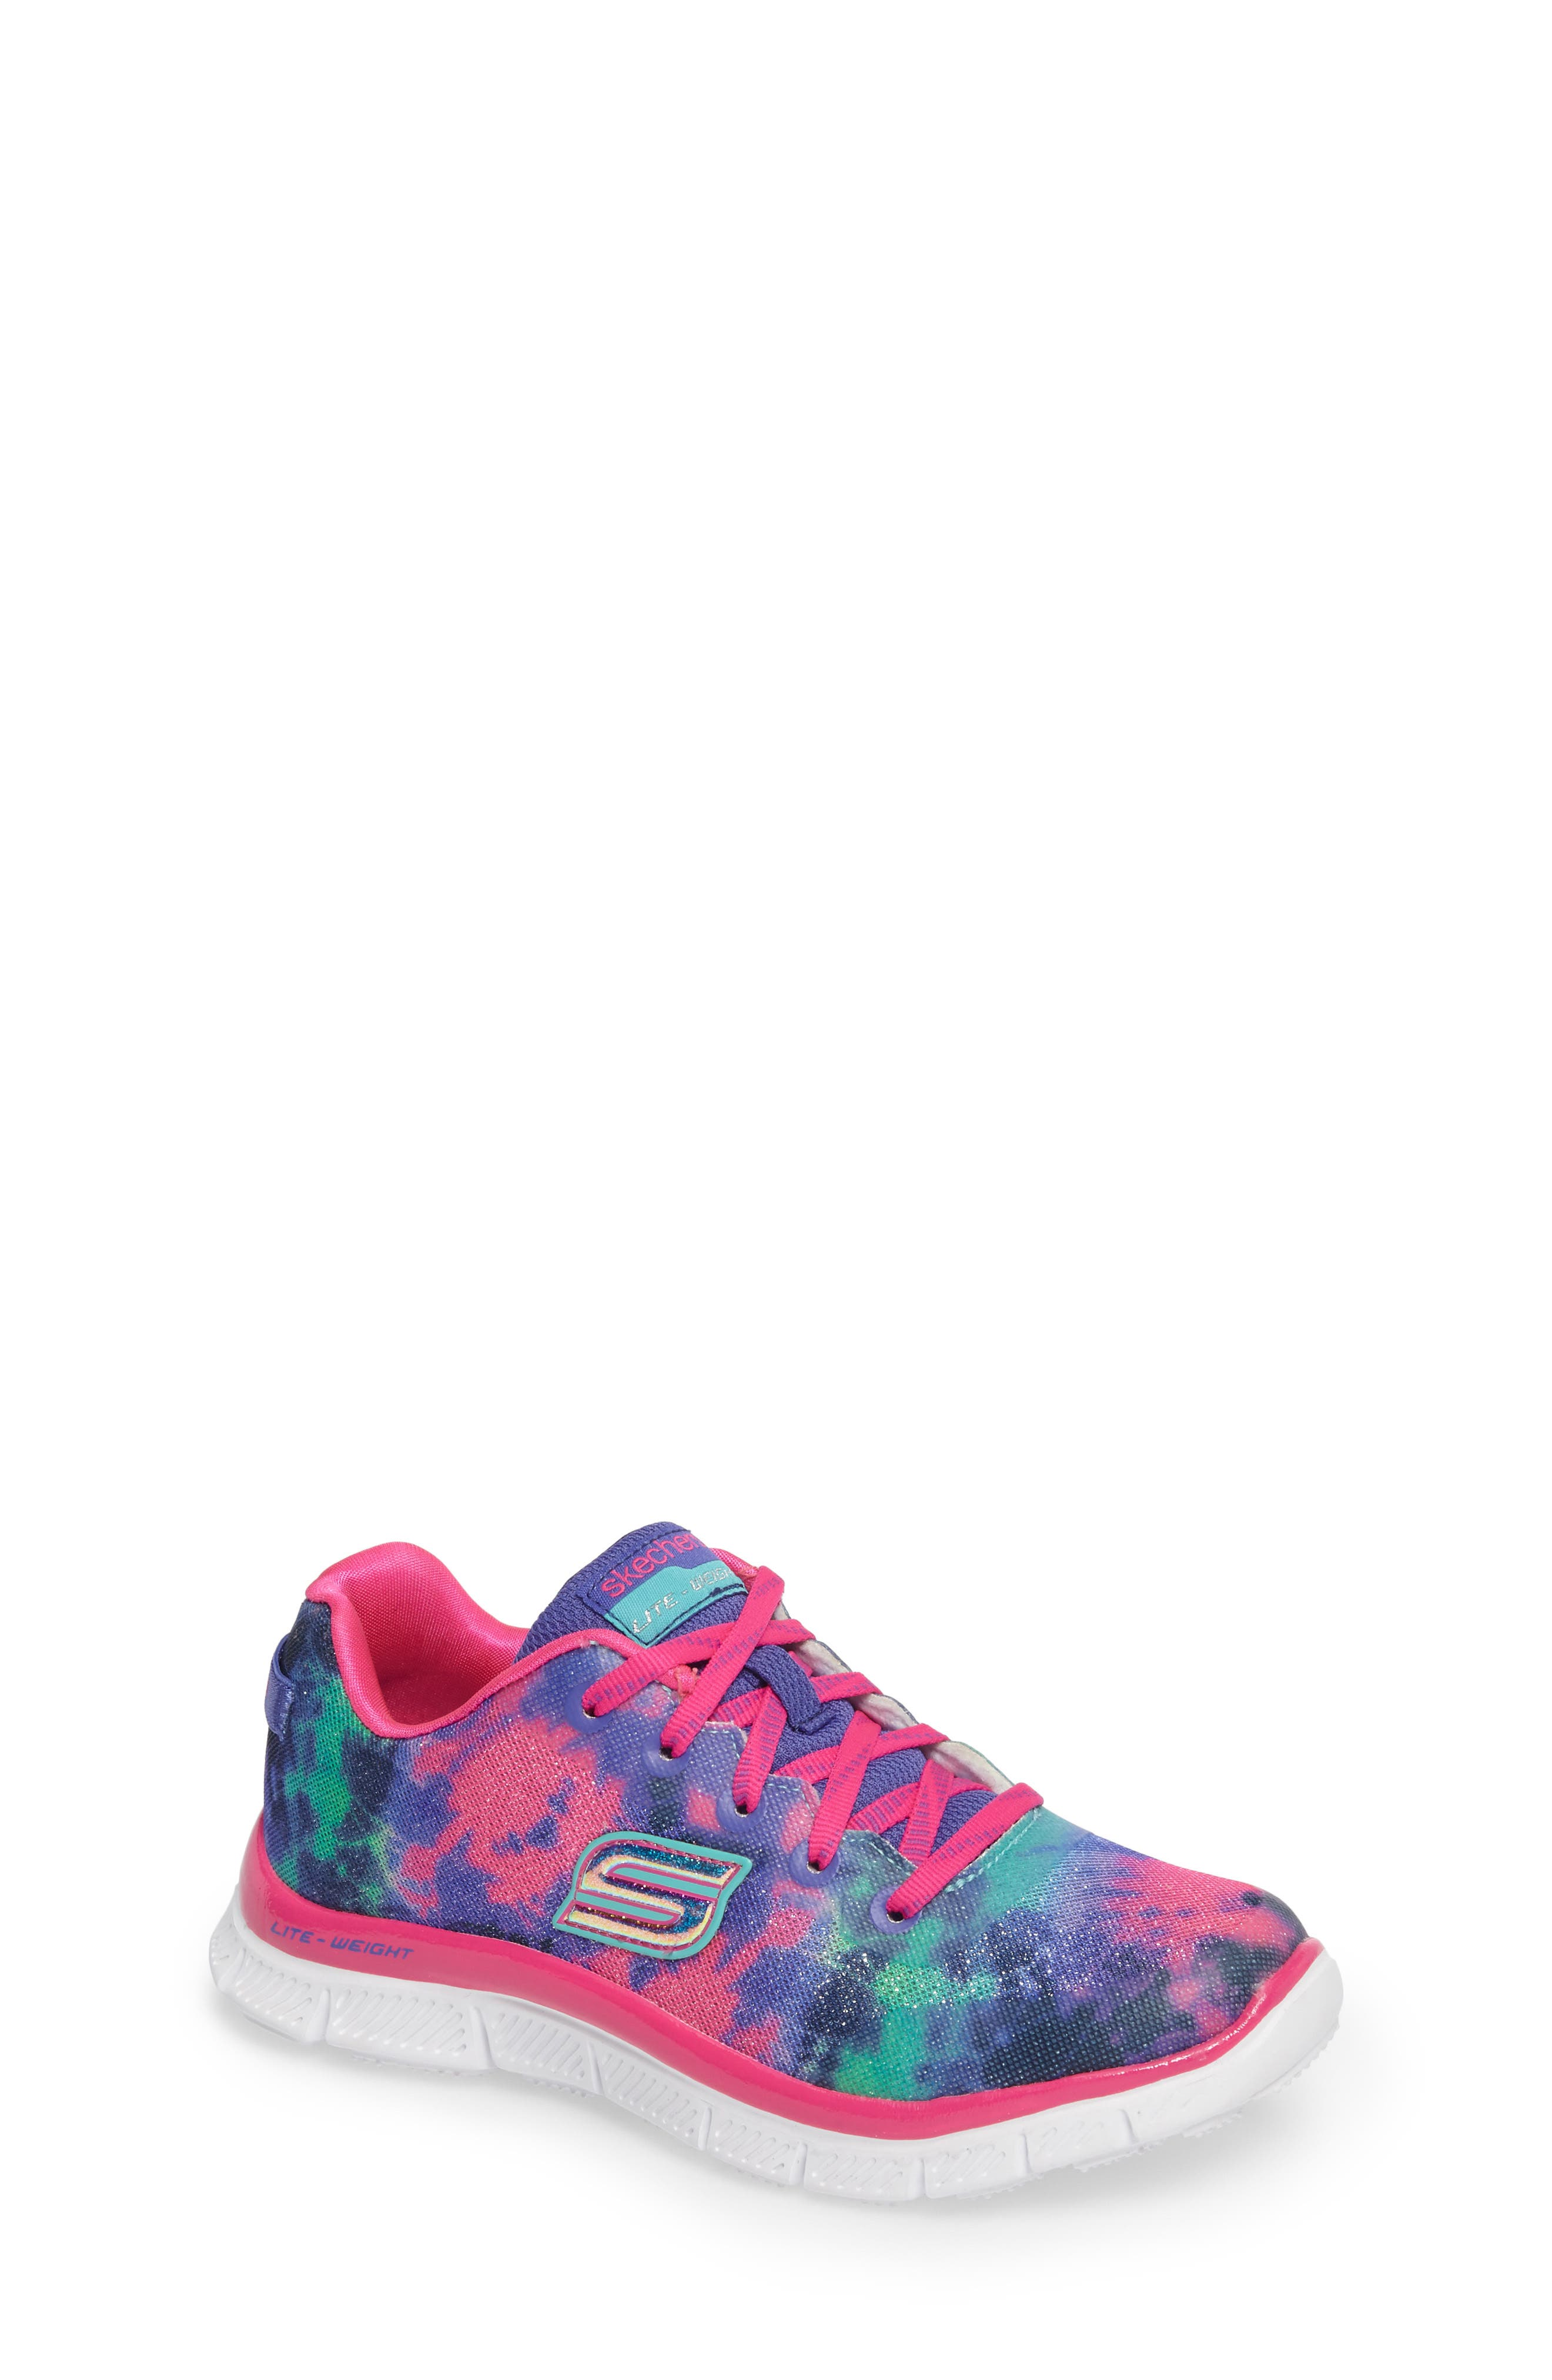 Skech Appeal Groove Thang Sneaker,                             Main thumbnail 1, color,                             650